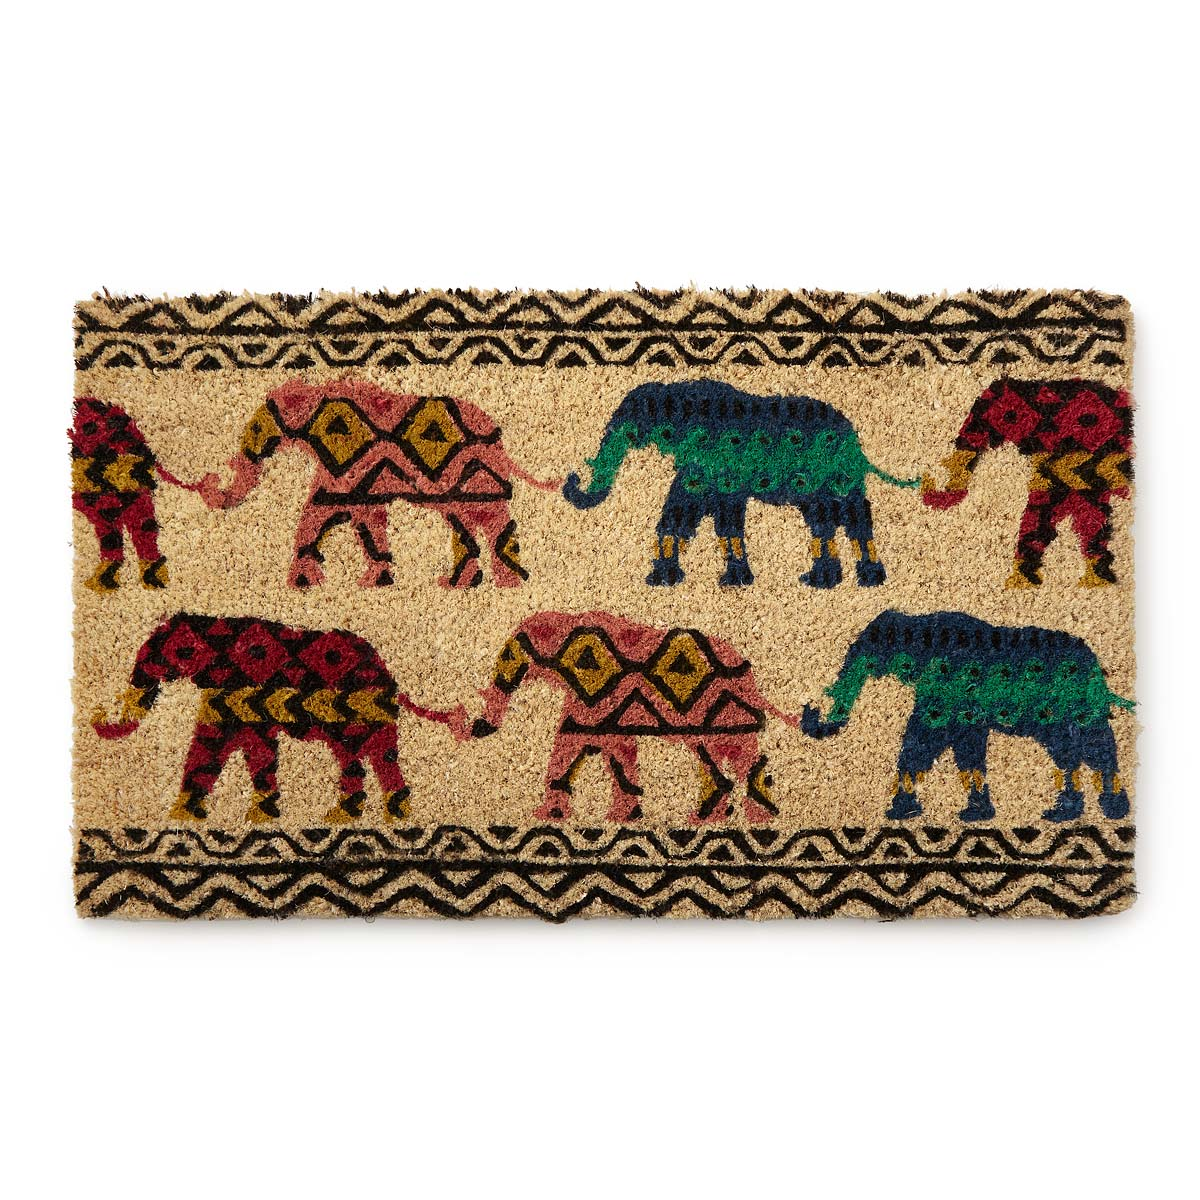 Global Elephant Doormat